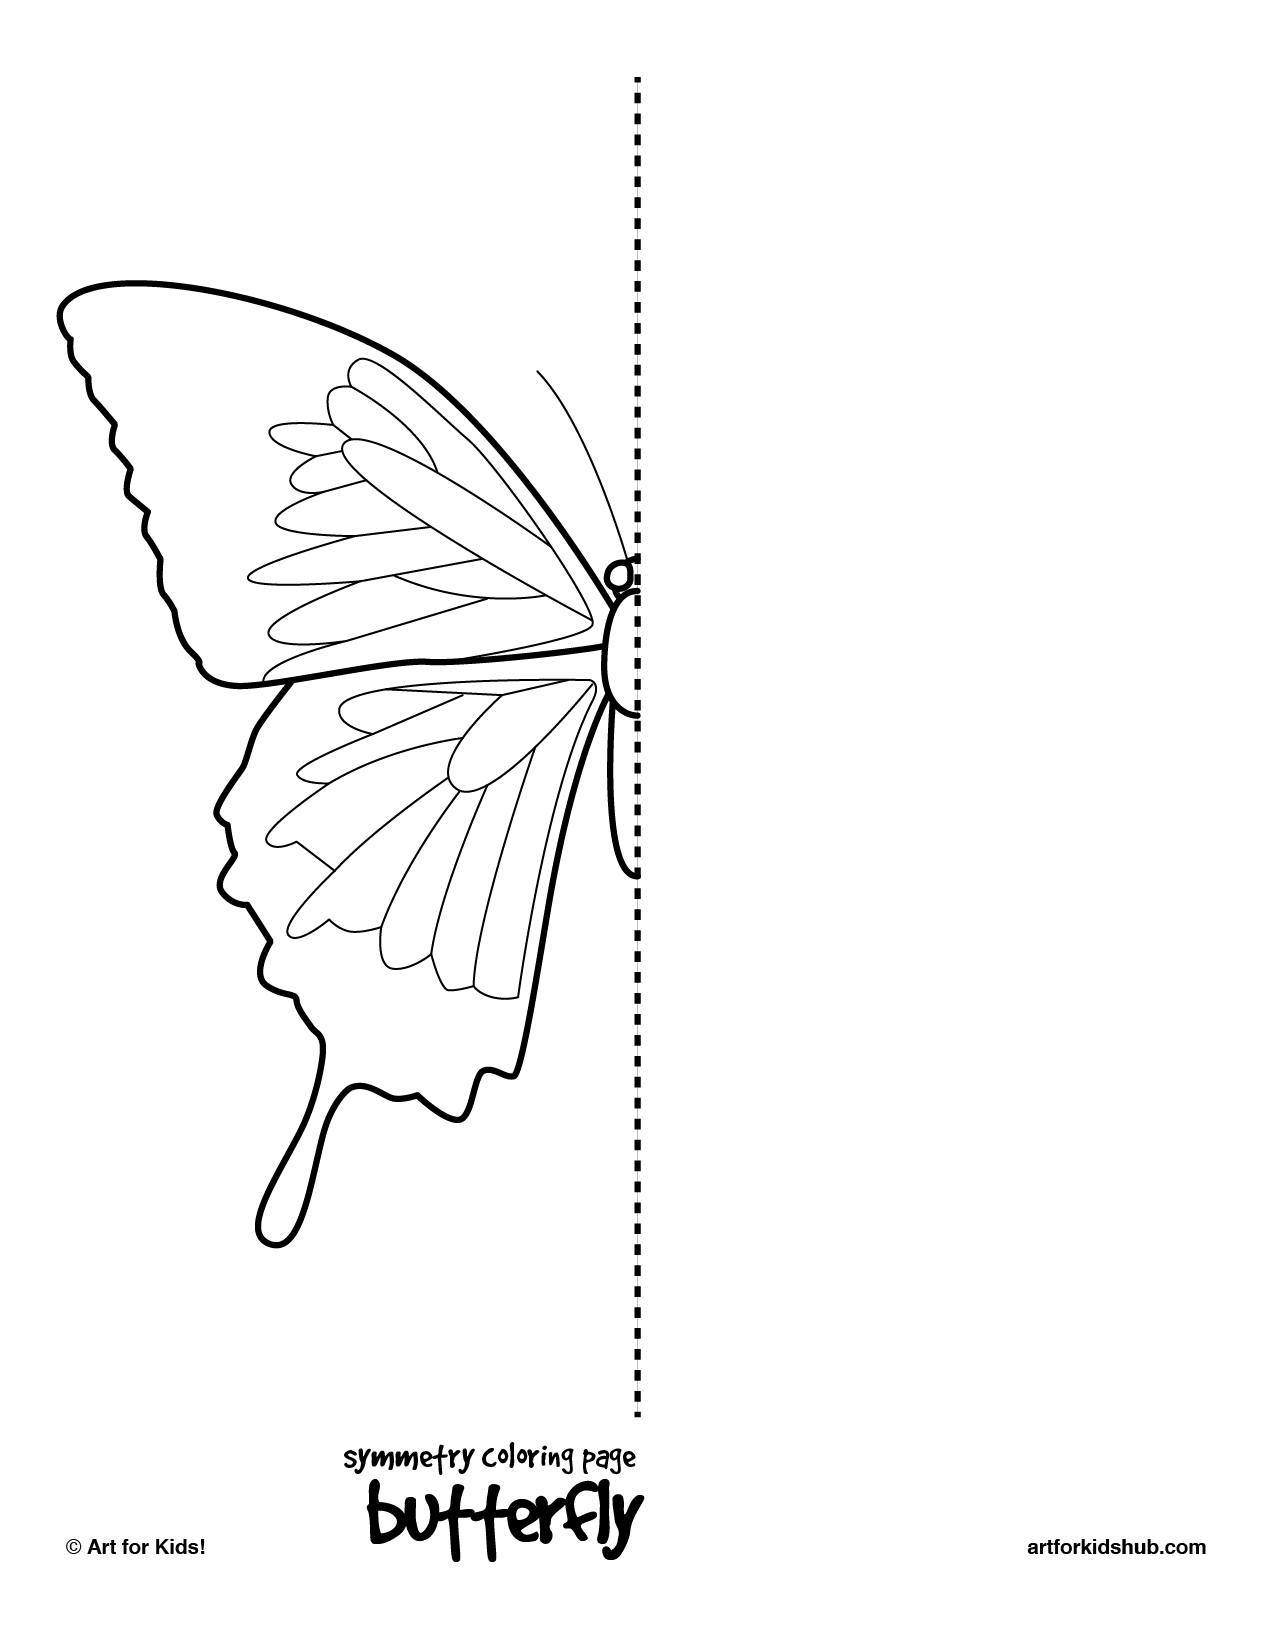 Symmetry Coloring Page Butterfly